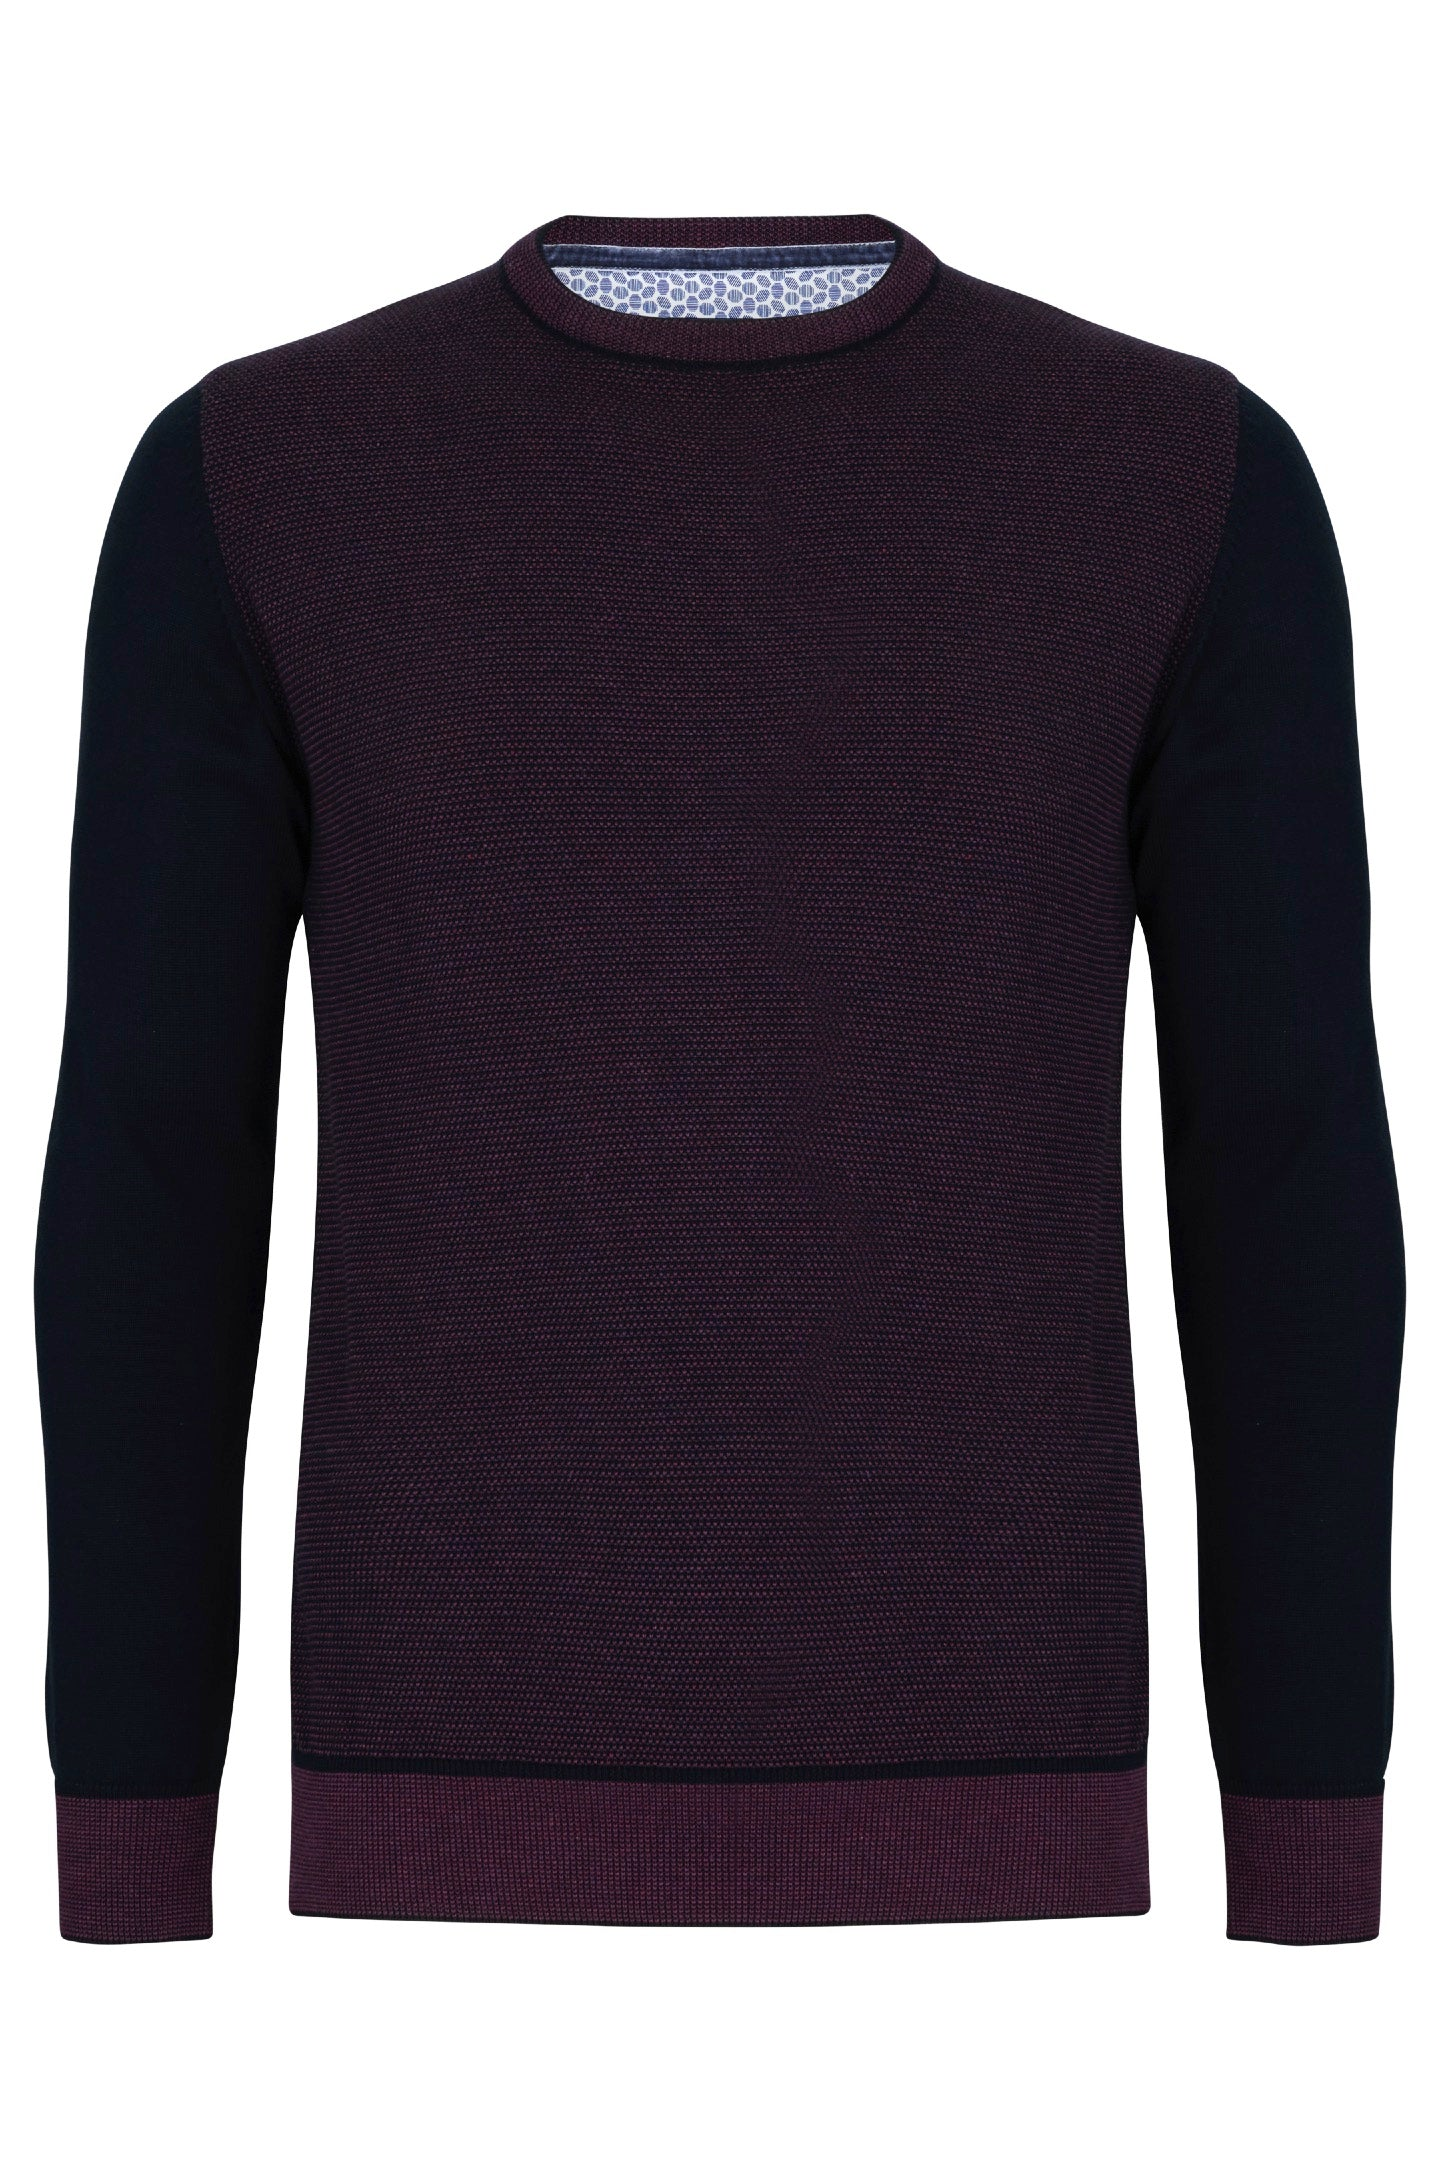 Benetti Trevor Plum Sweater